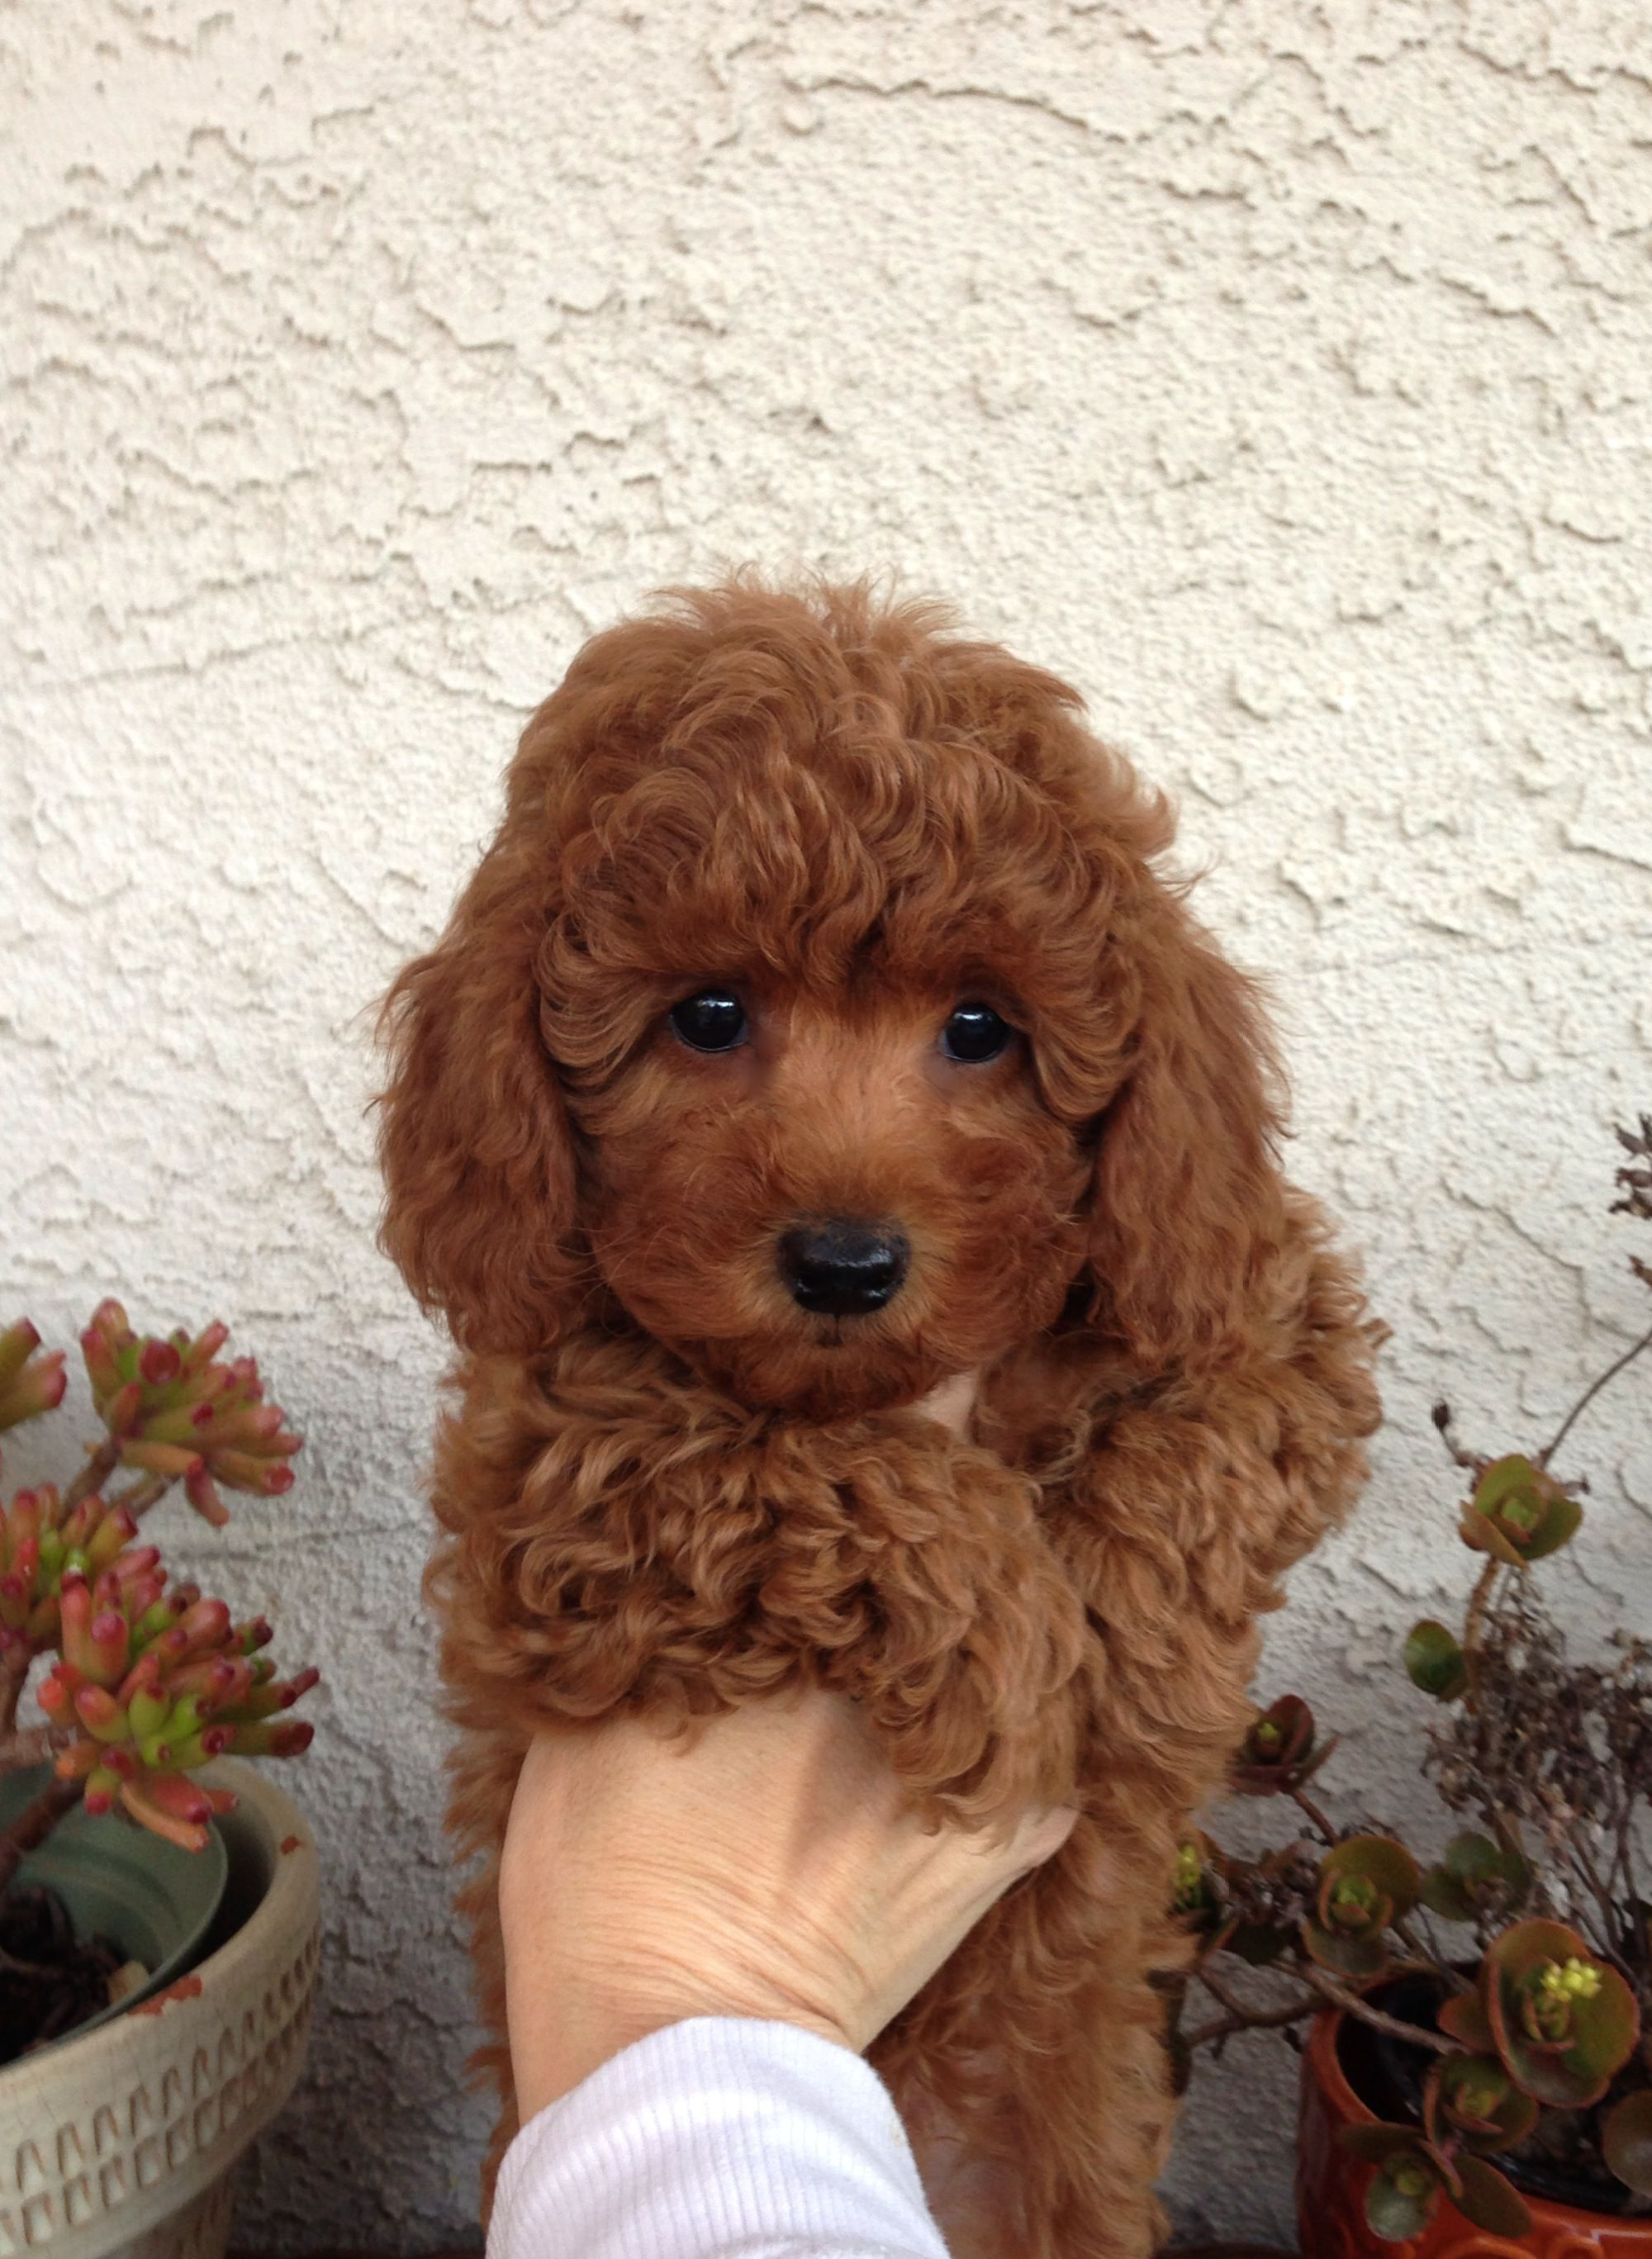 I Want 3 Super Cute Puppies Poodle Puppy Red Poodles